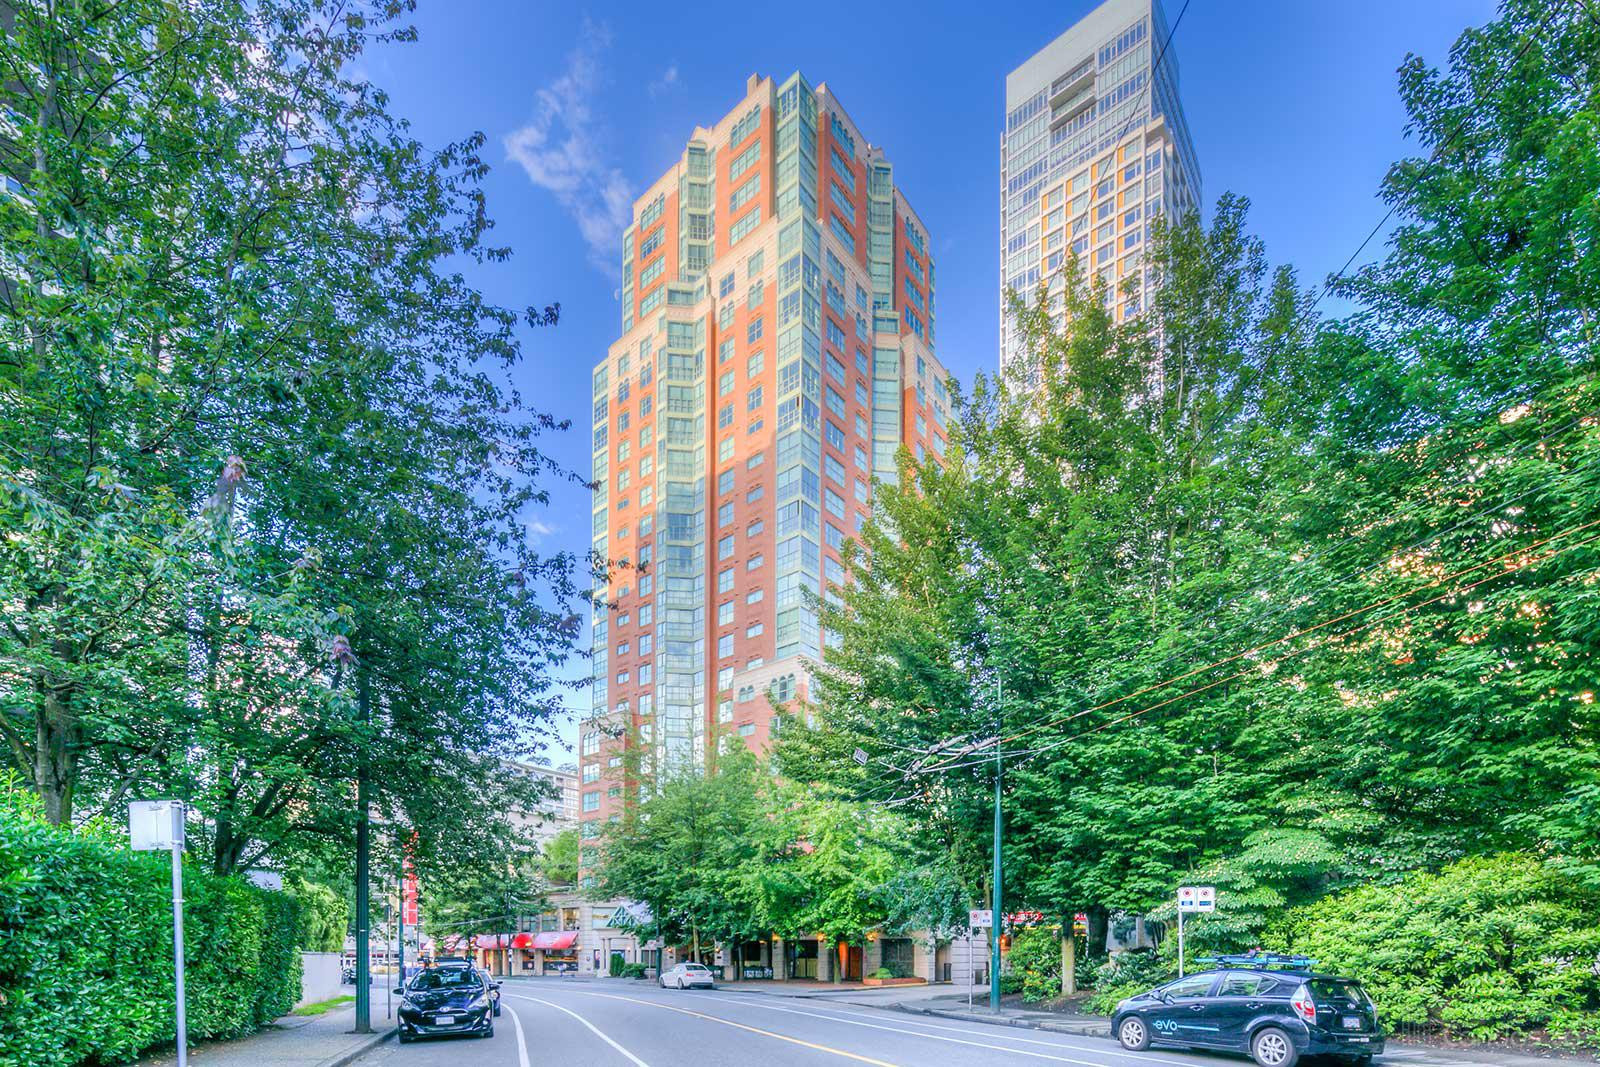 Vancouver Tower at 909 Burrard St, Vancouver 1